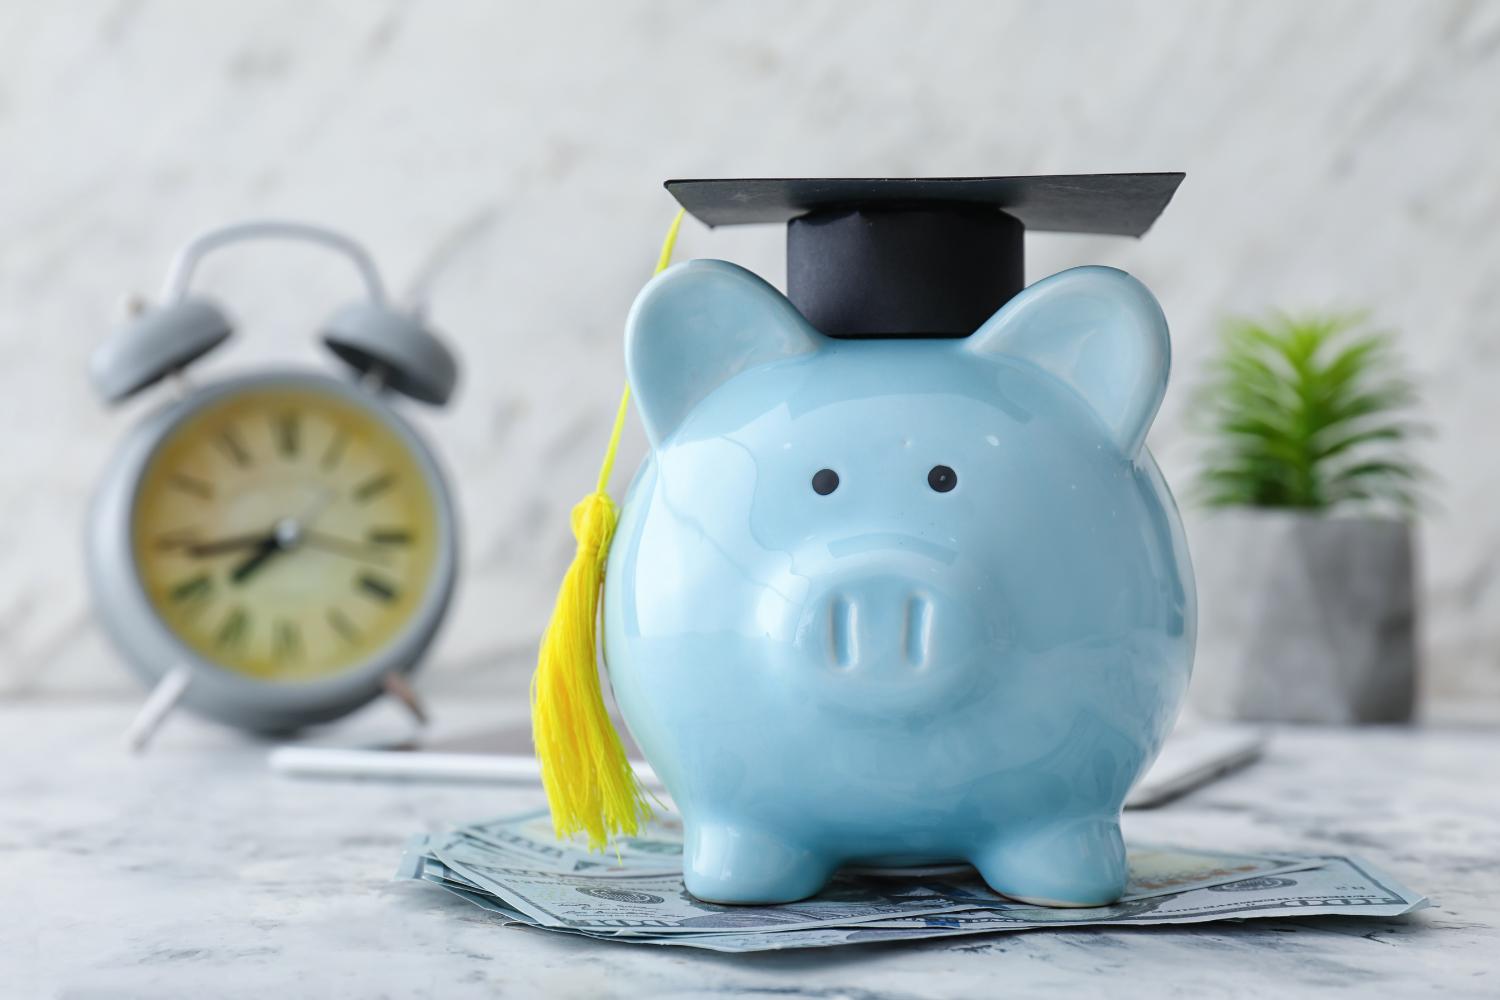 The Top 10 Online Payment & Billing Solutions for Universities & Colleges